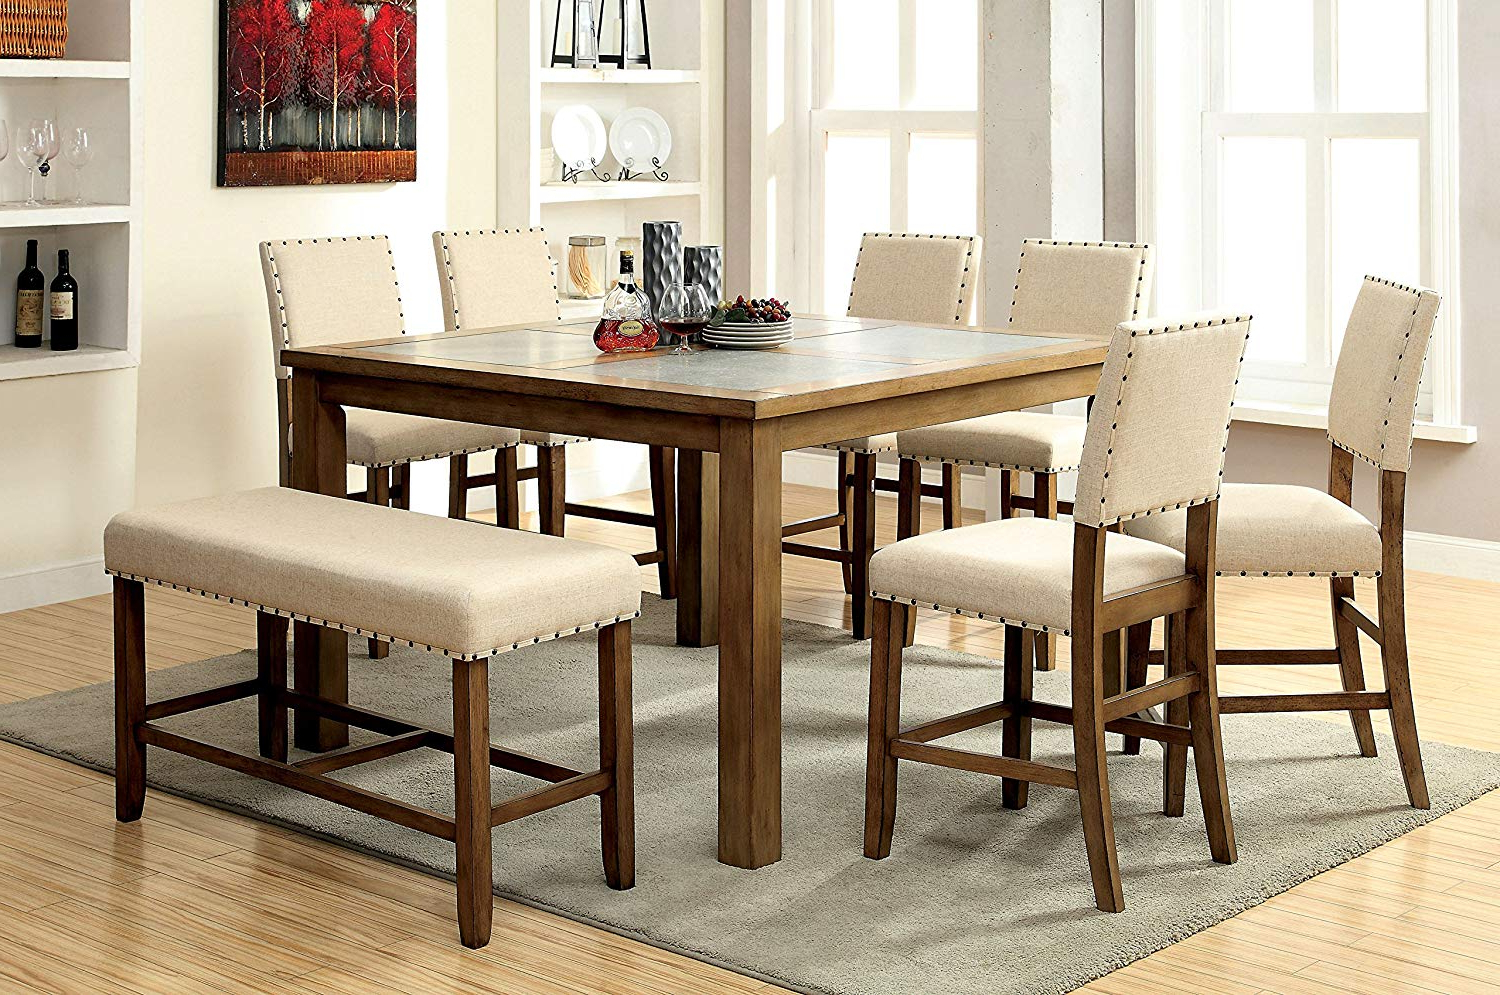 Widely Used Transitional Driftwood Casual Dining Tables For Furniture Of America Lucena 8 Piece Transitional Pub Dining Set (View 28 of 30)